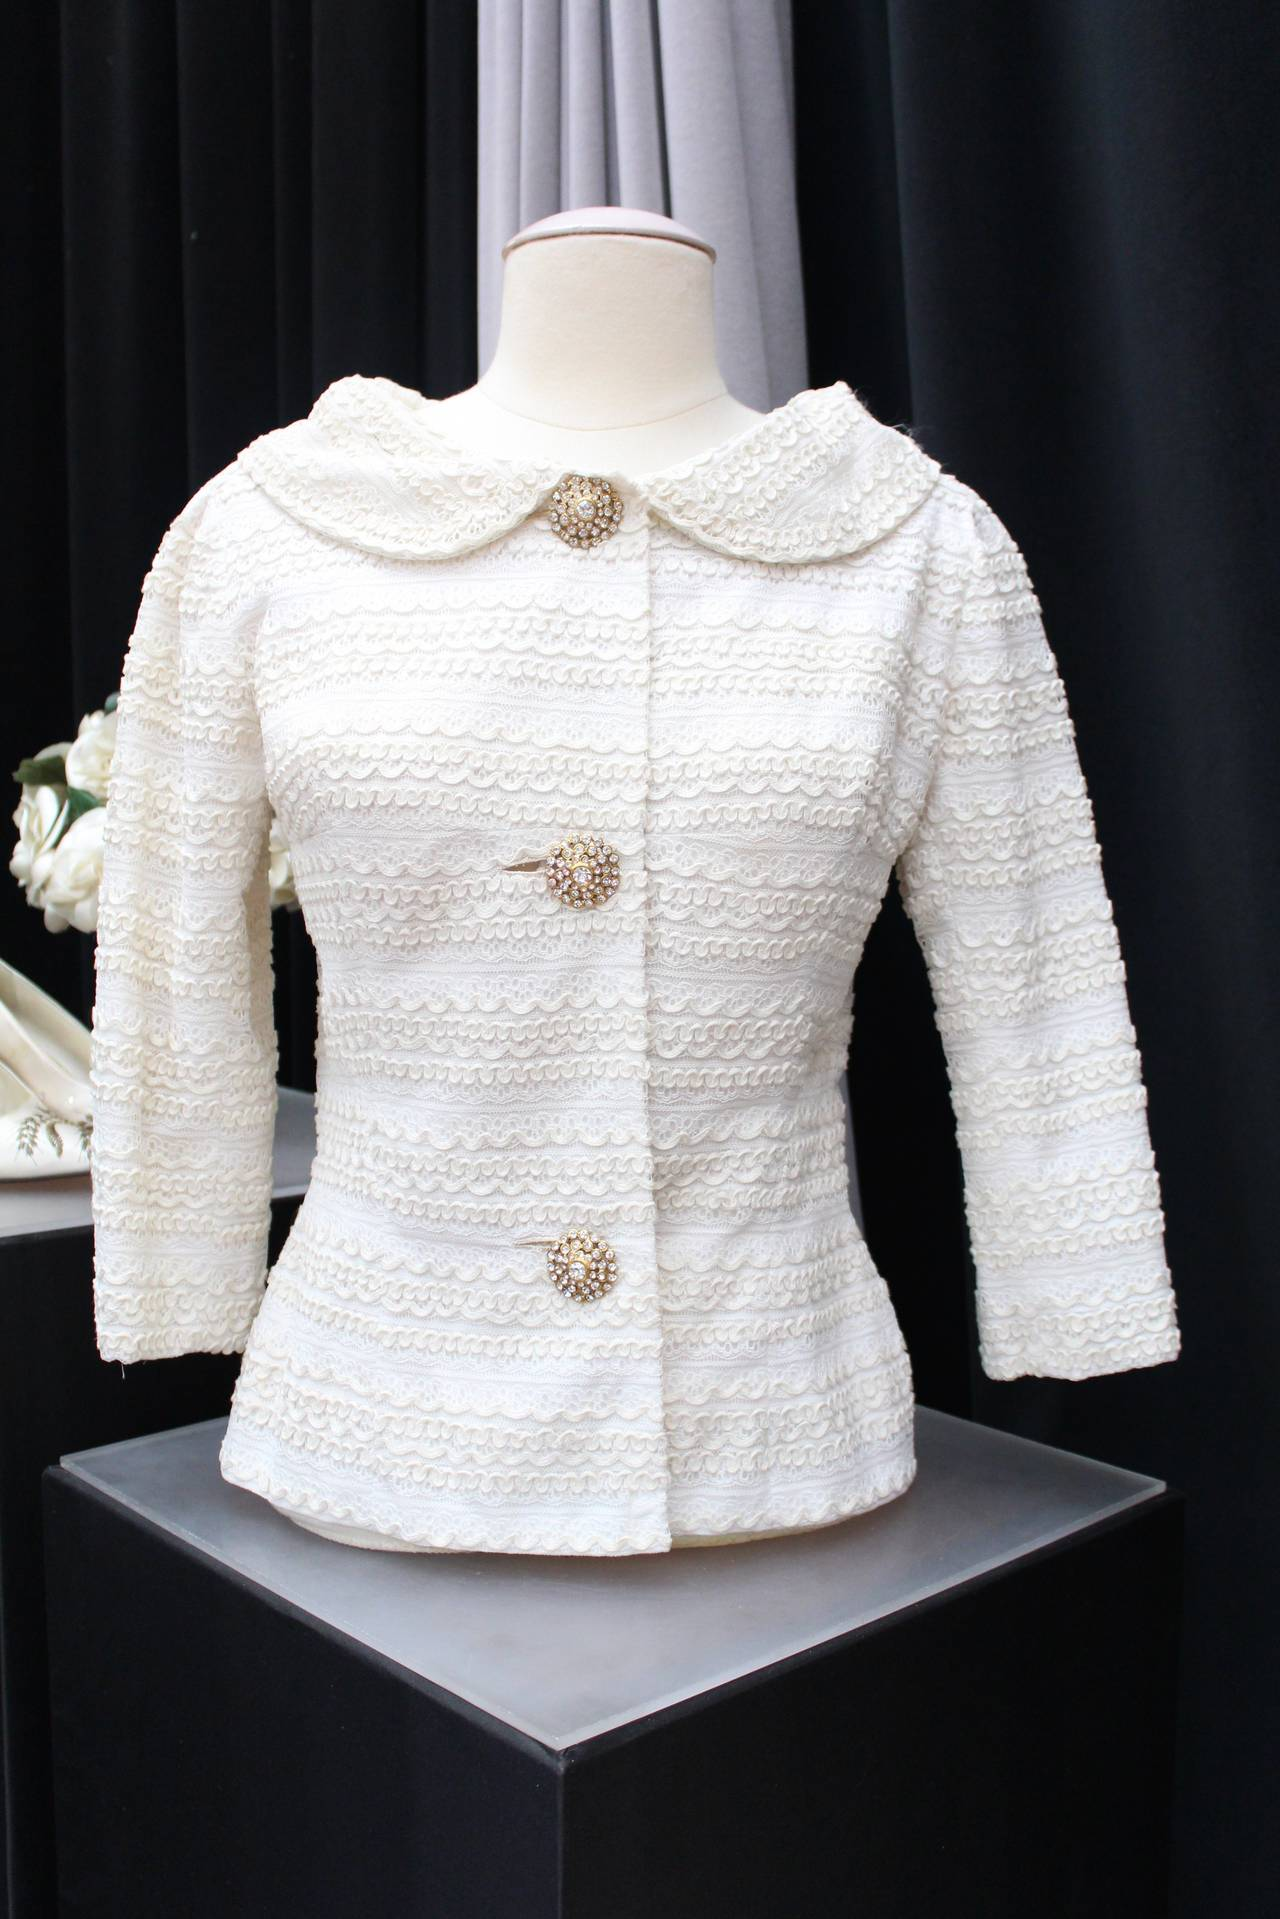 1961 Carven Haute Couture White Lace Dress and Jacket Ensemble 8